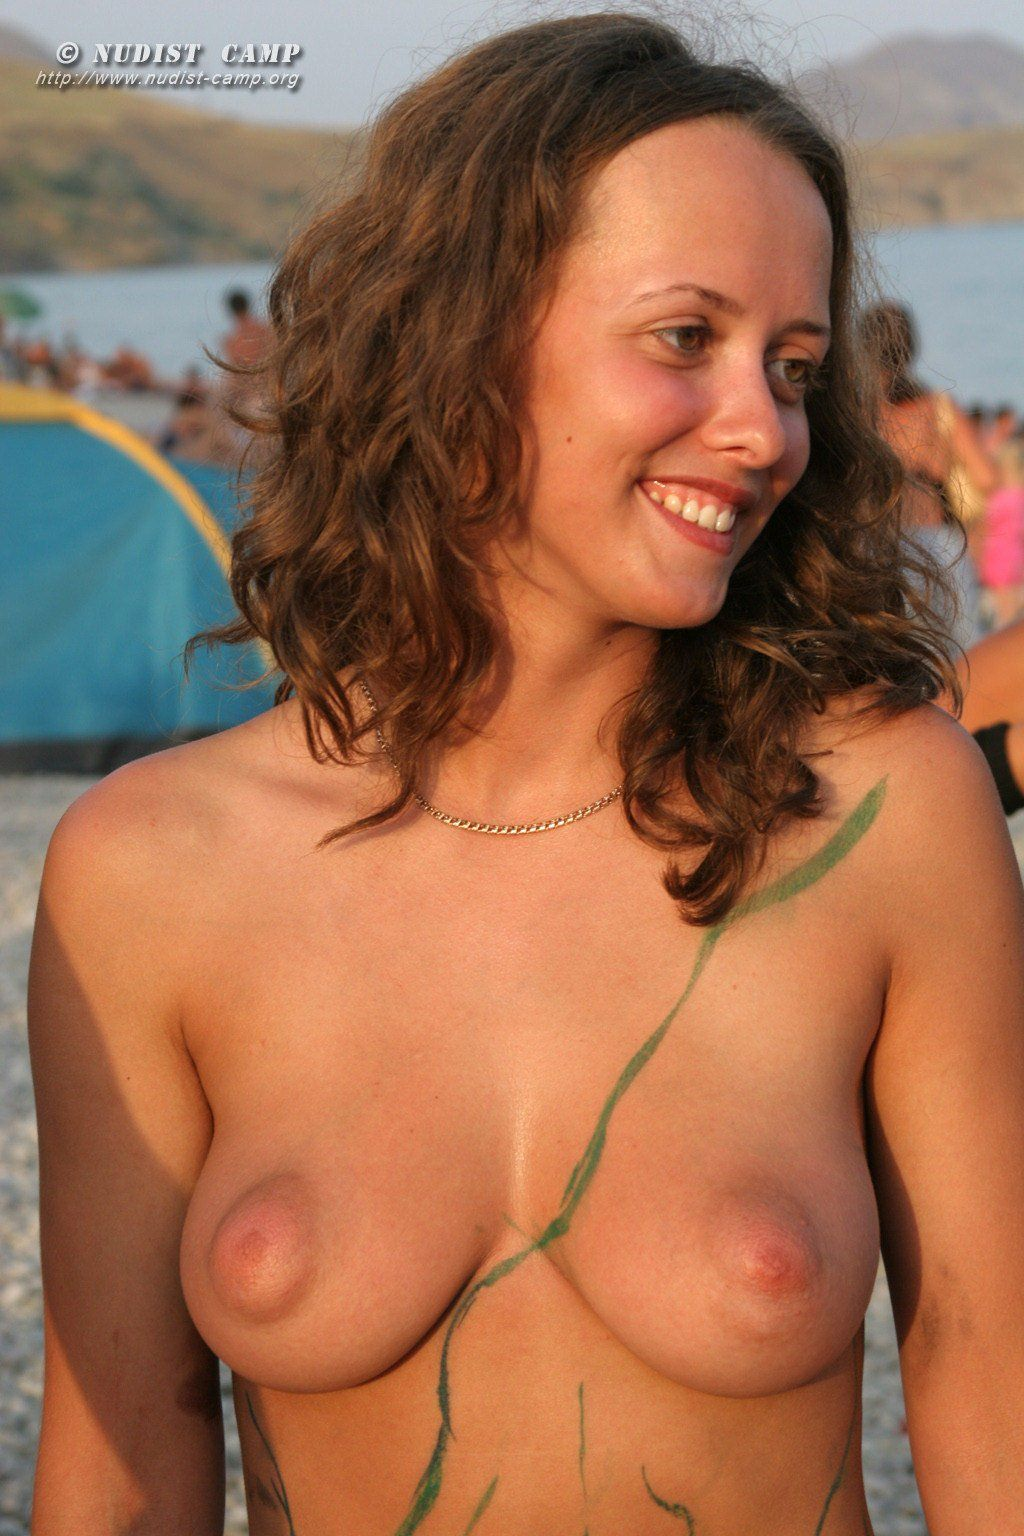 Nudist camp with pictures of very bushy women